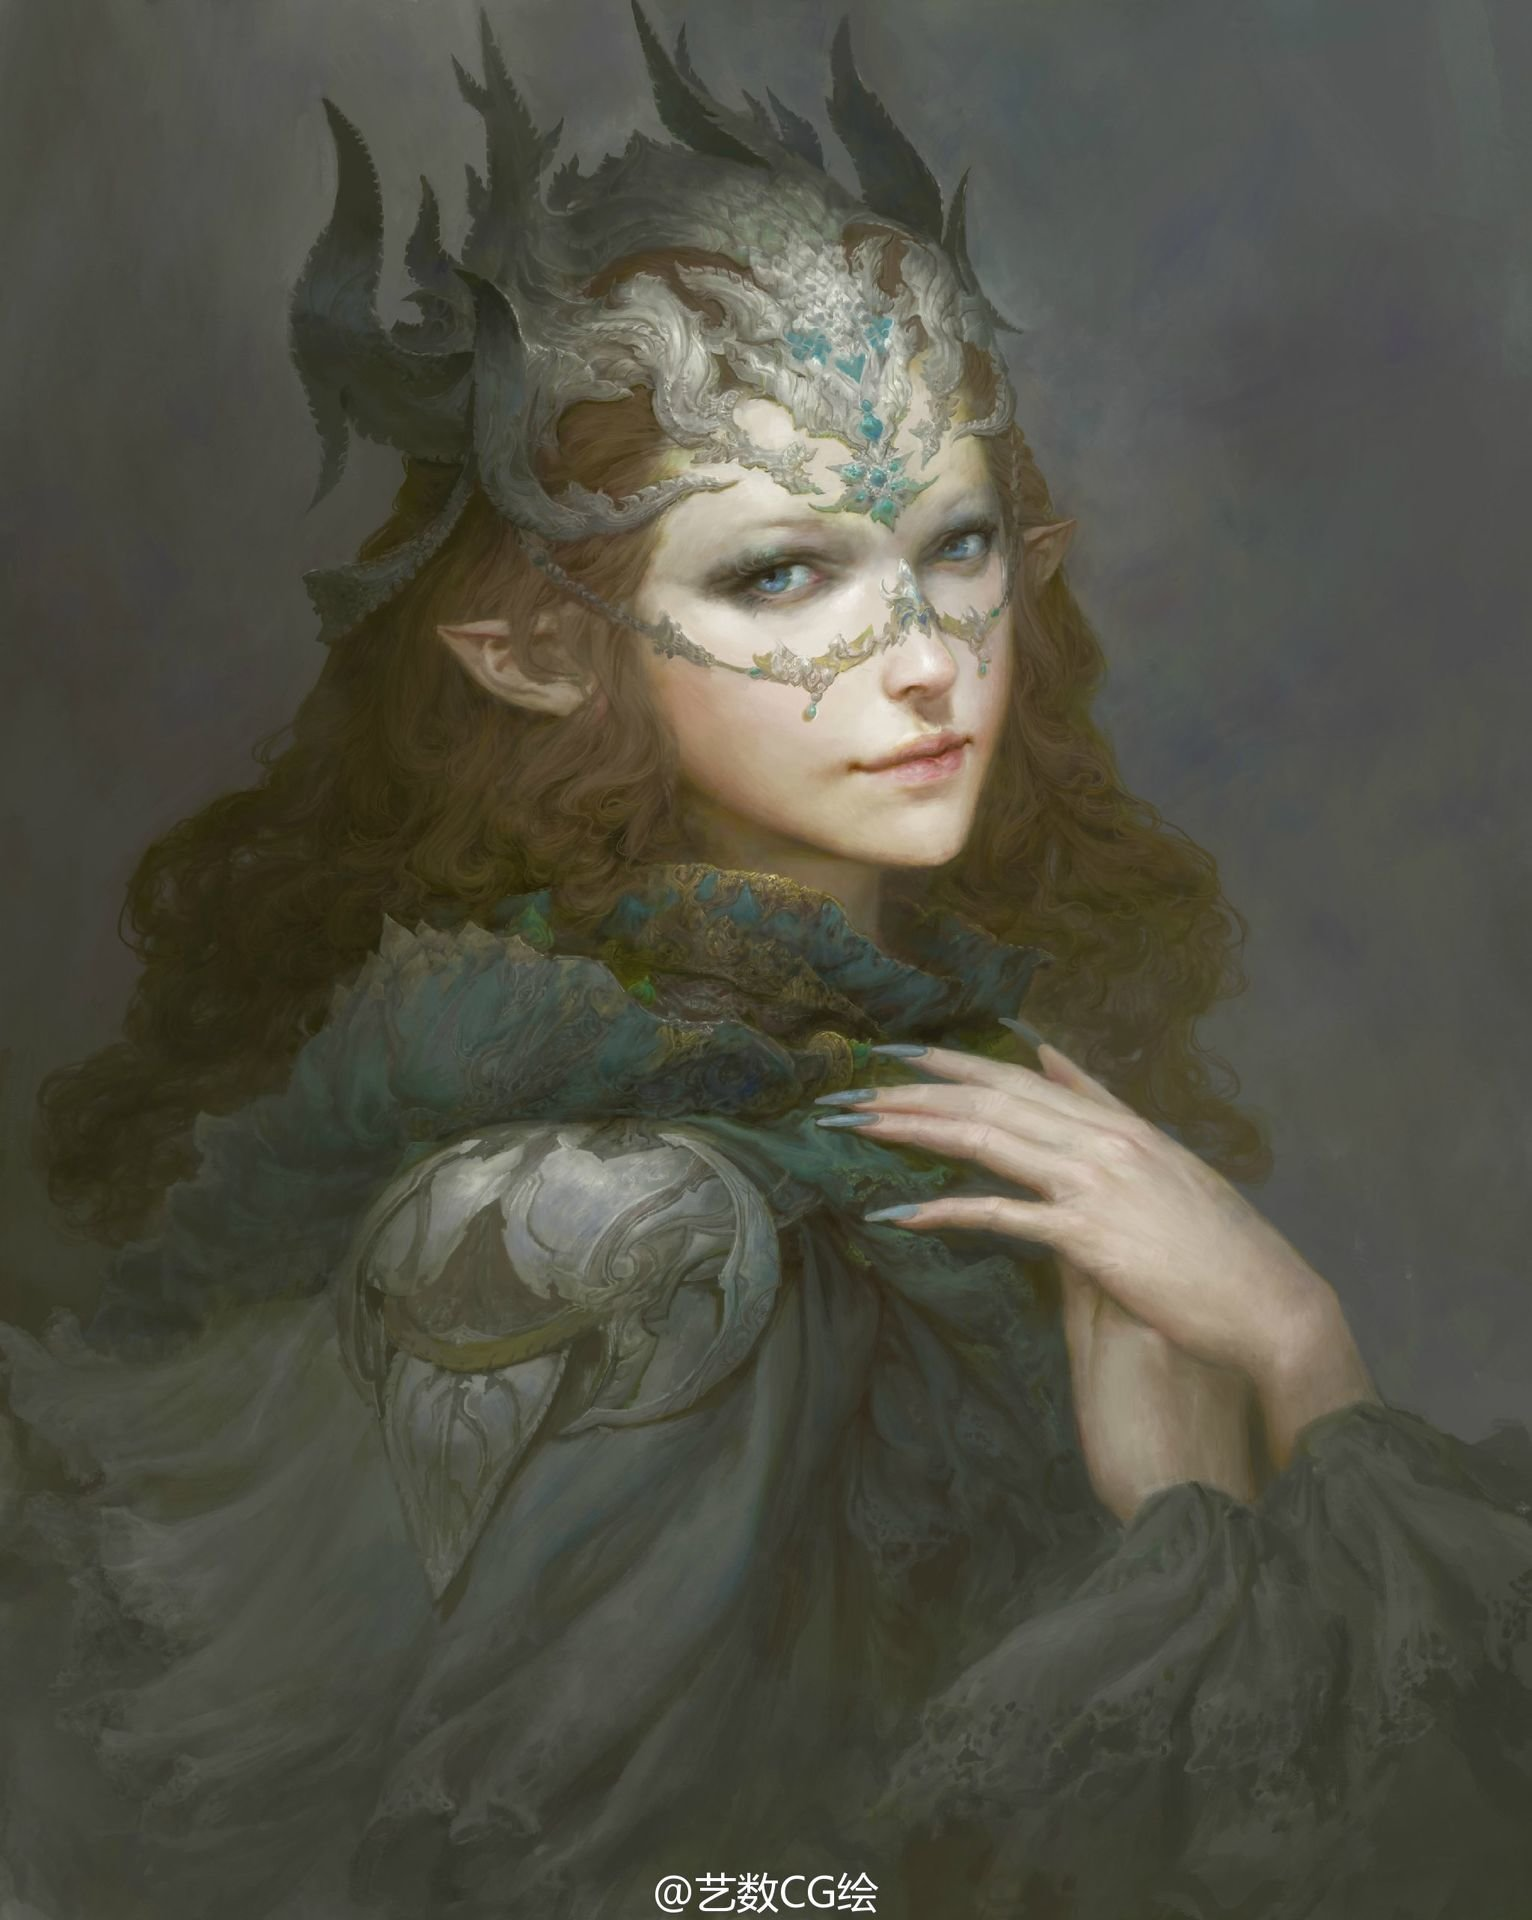 Fenghua zhong the wolf girl